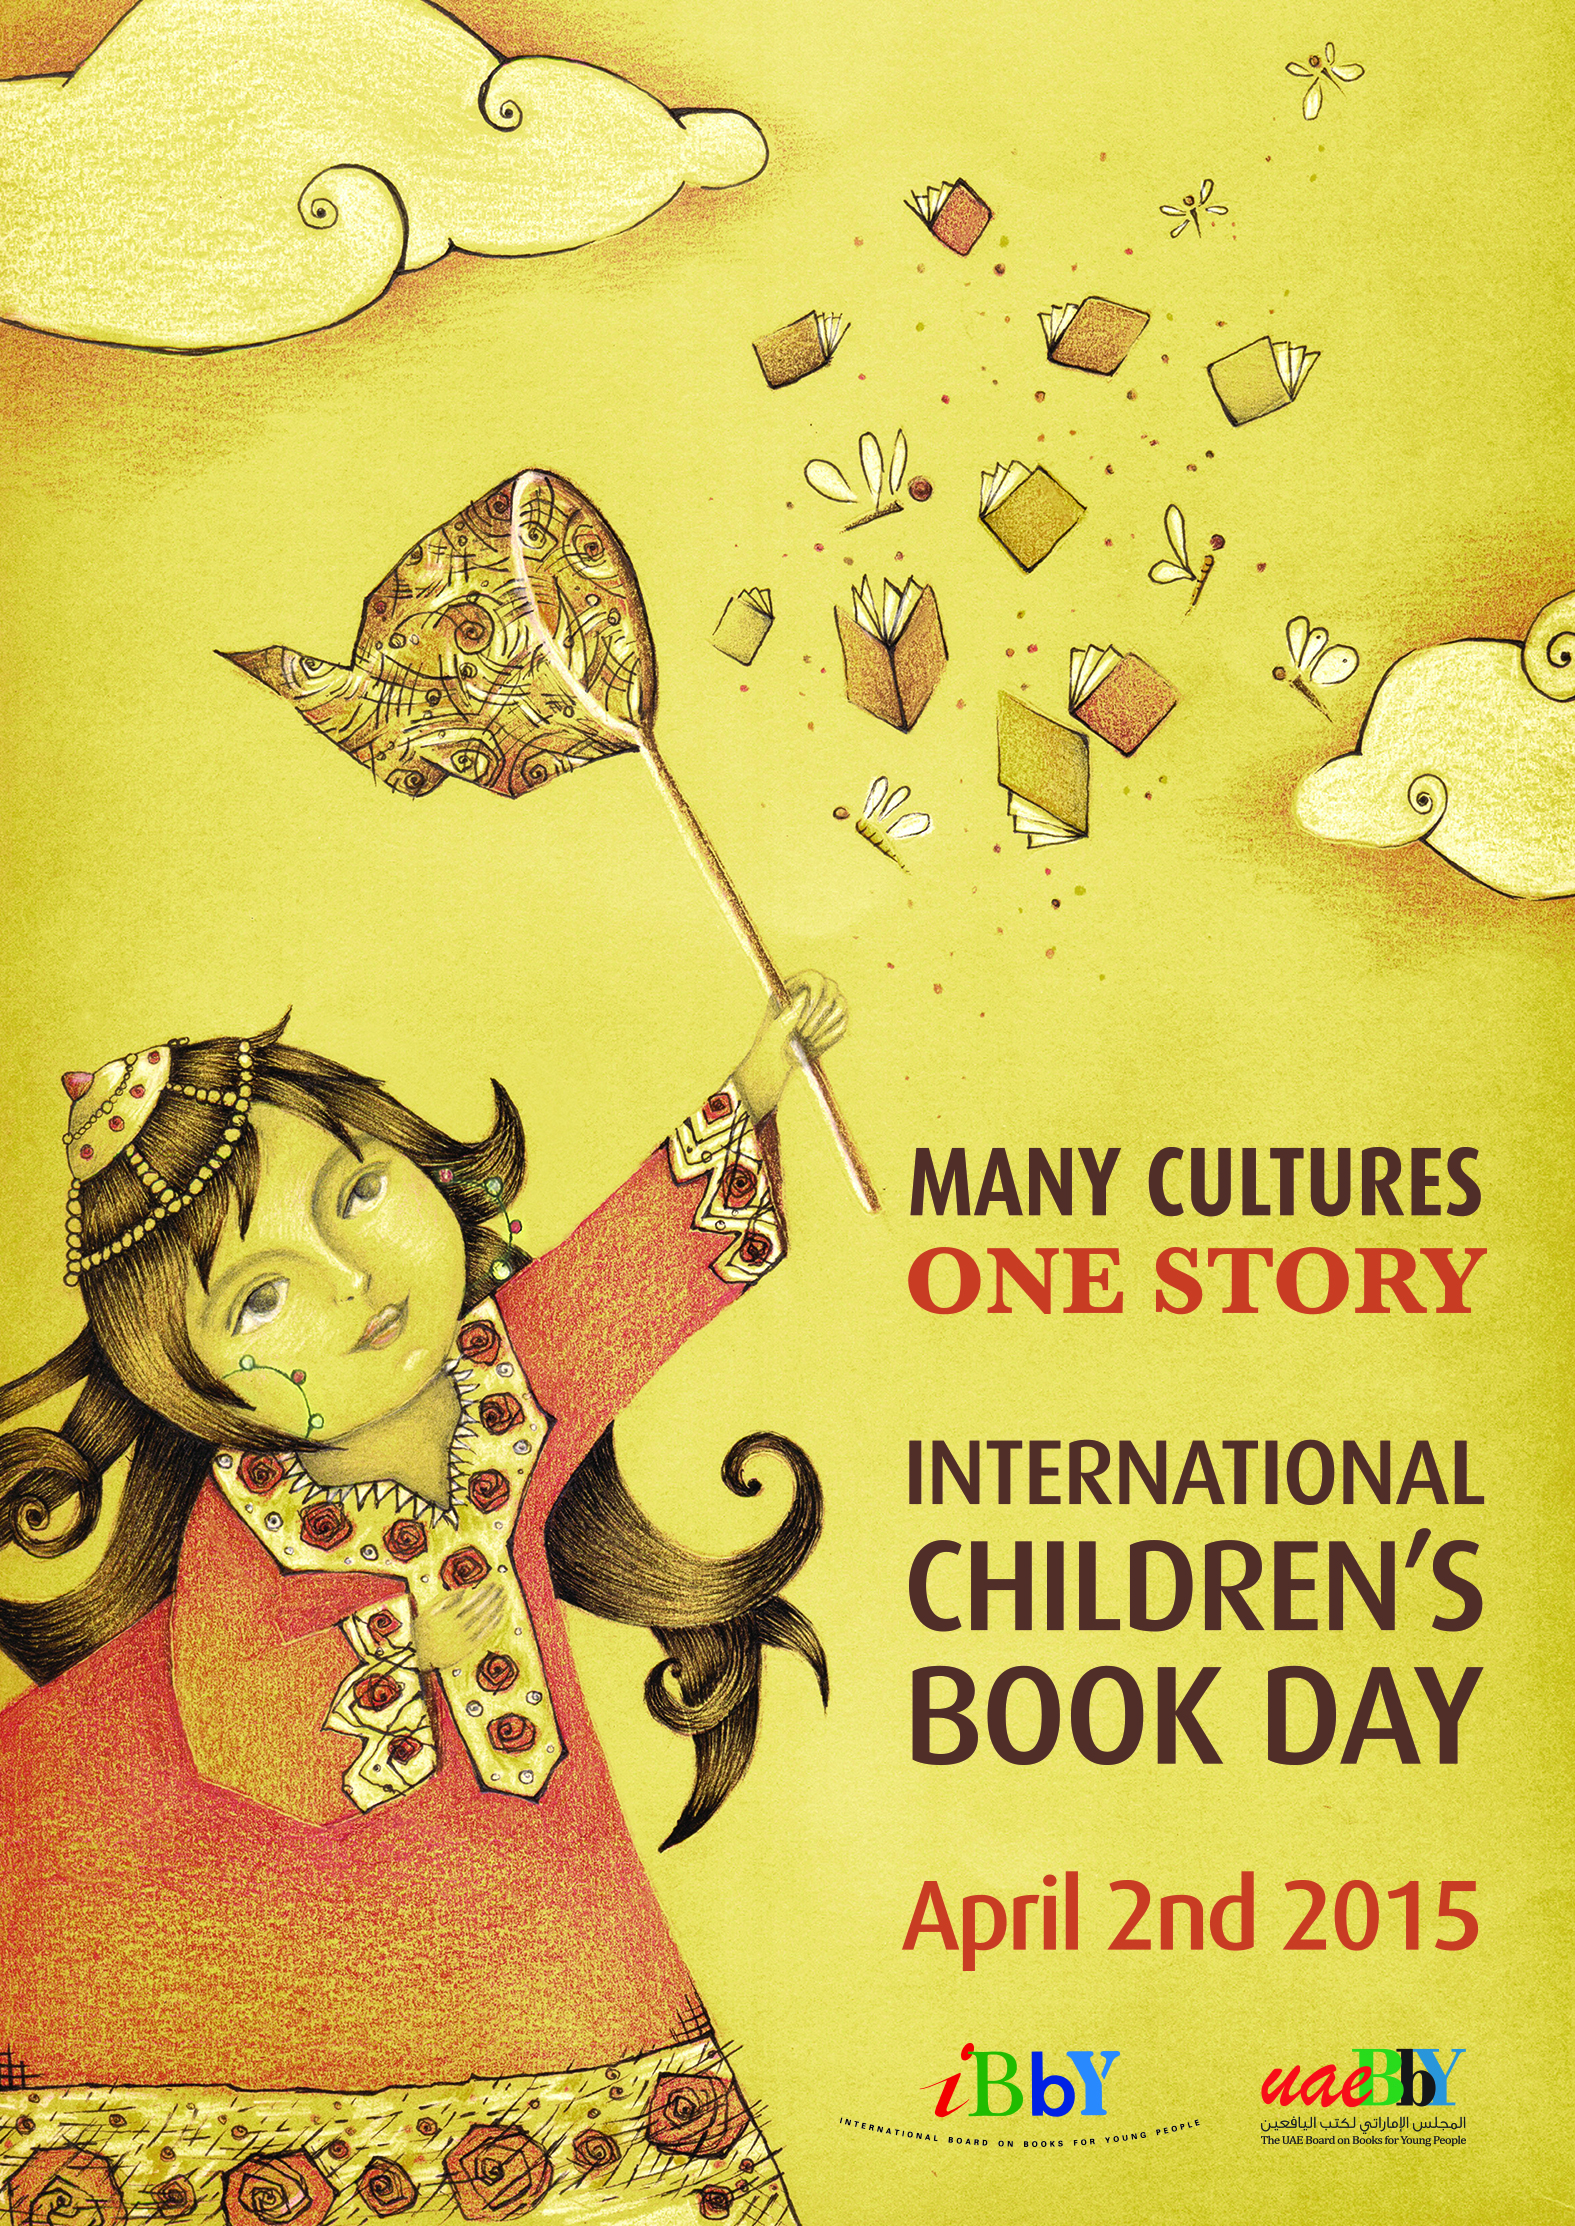 One Day Libro International Children 39s Book Day What And When Is Icbd